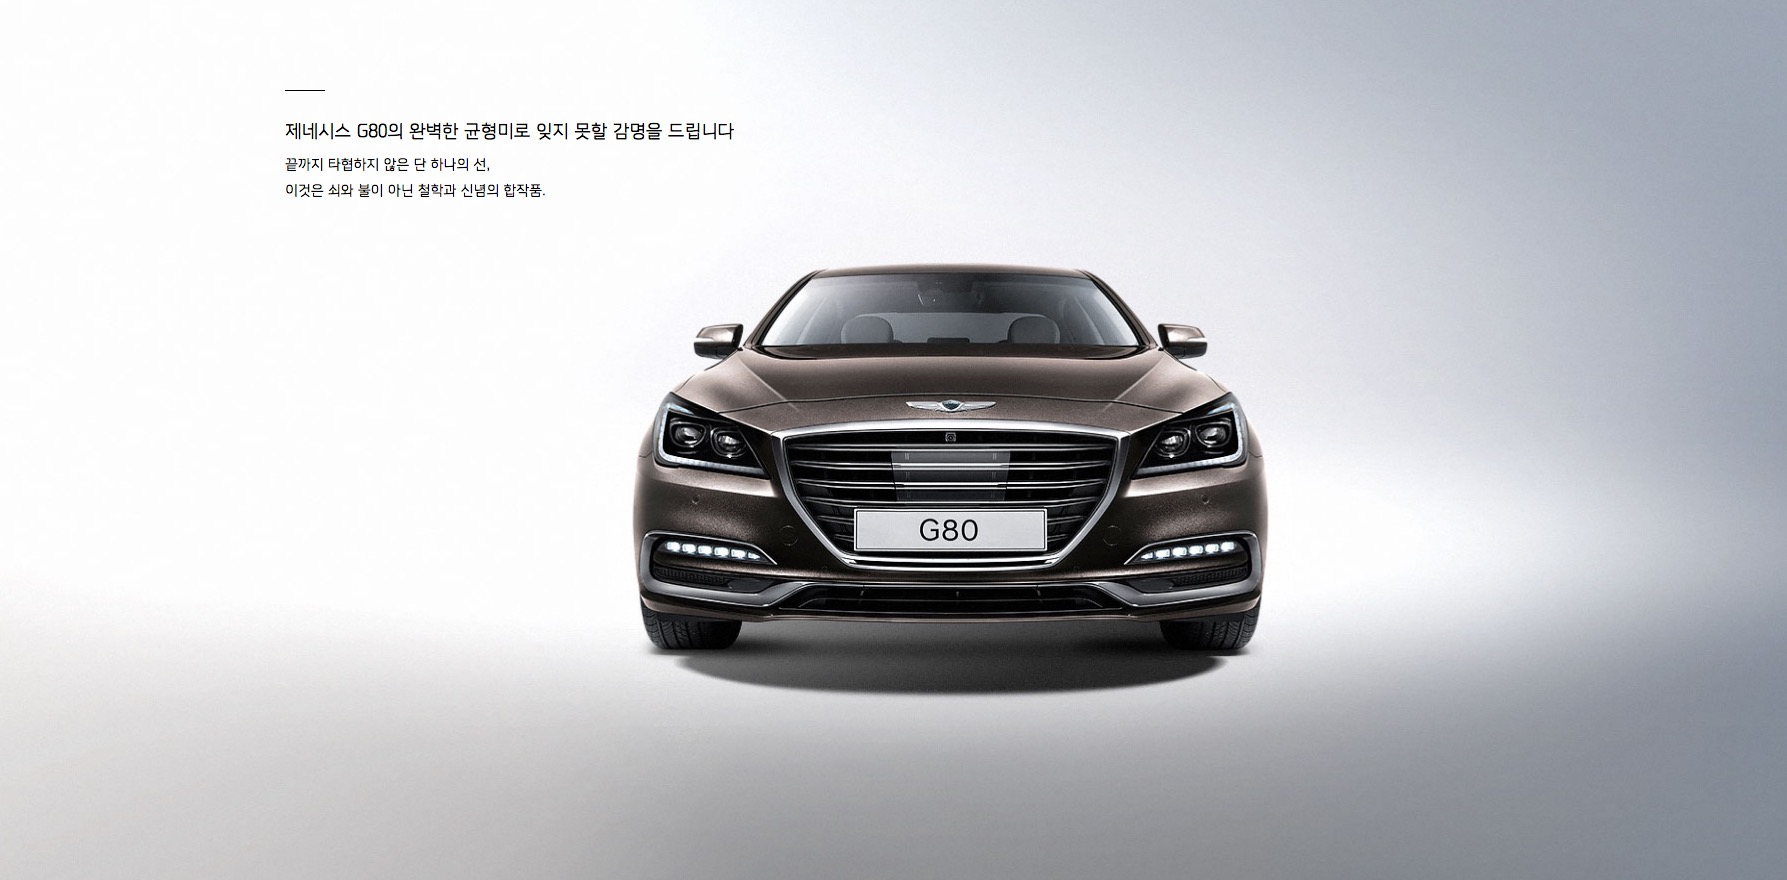 2017 Genesis G80 Unveiled At 2016 Busan Auto Show Alongside G80